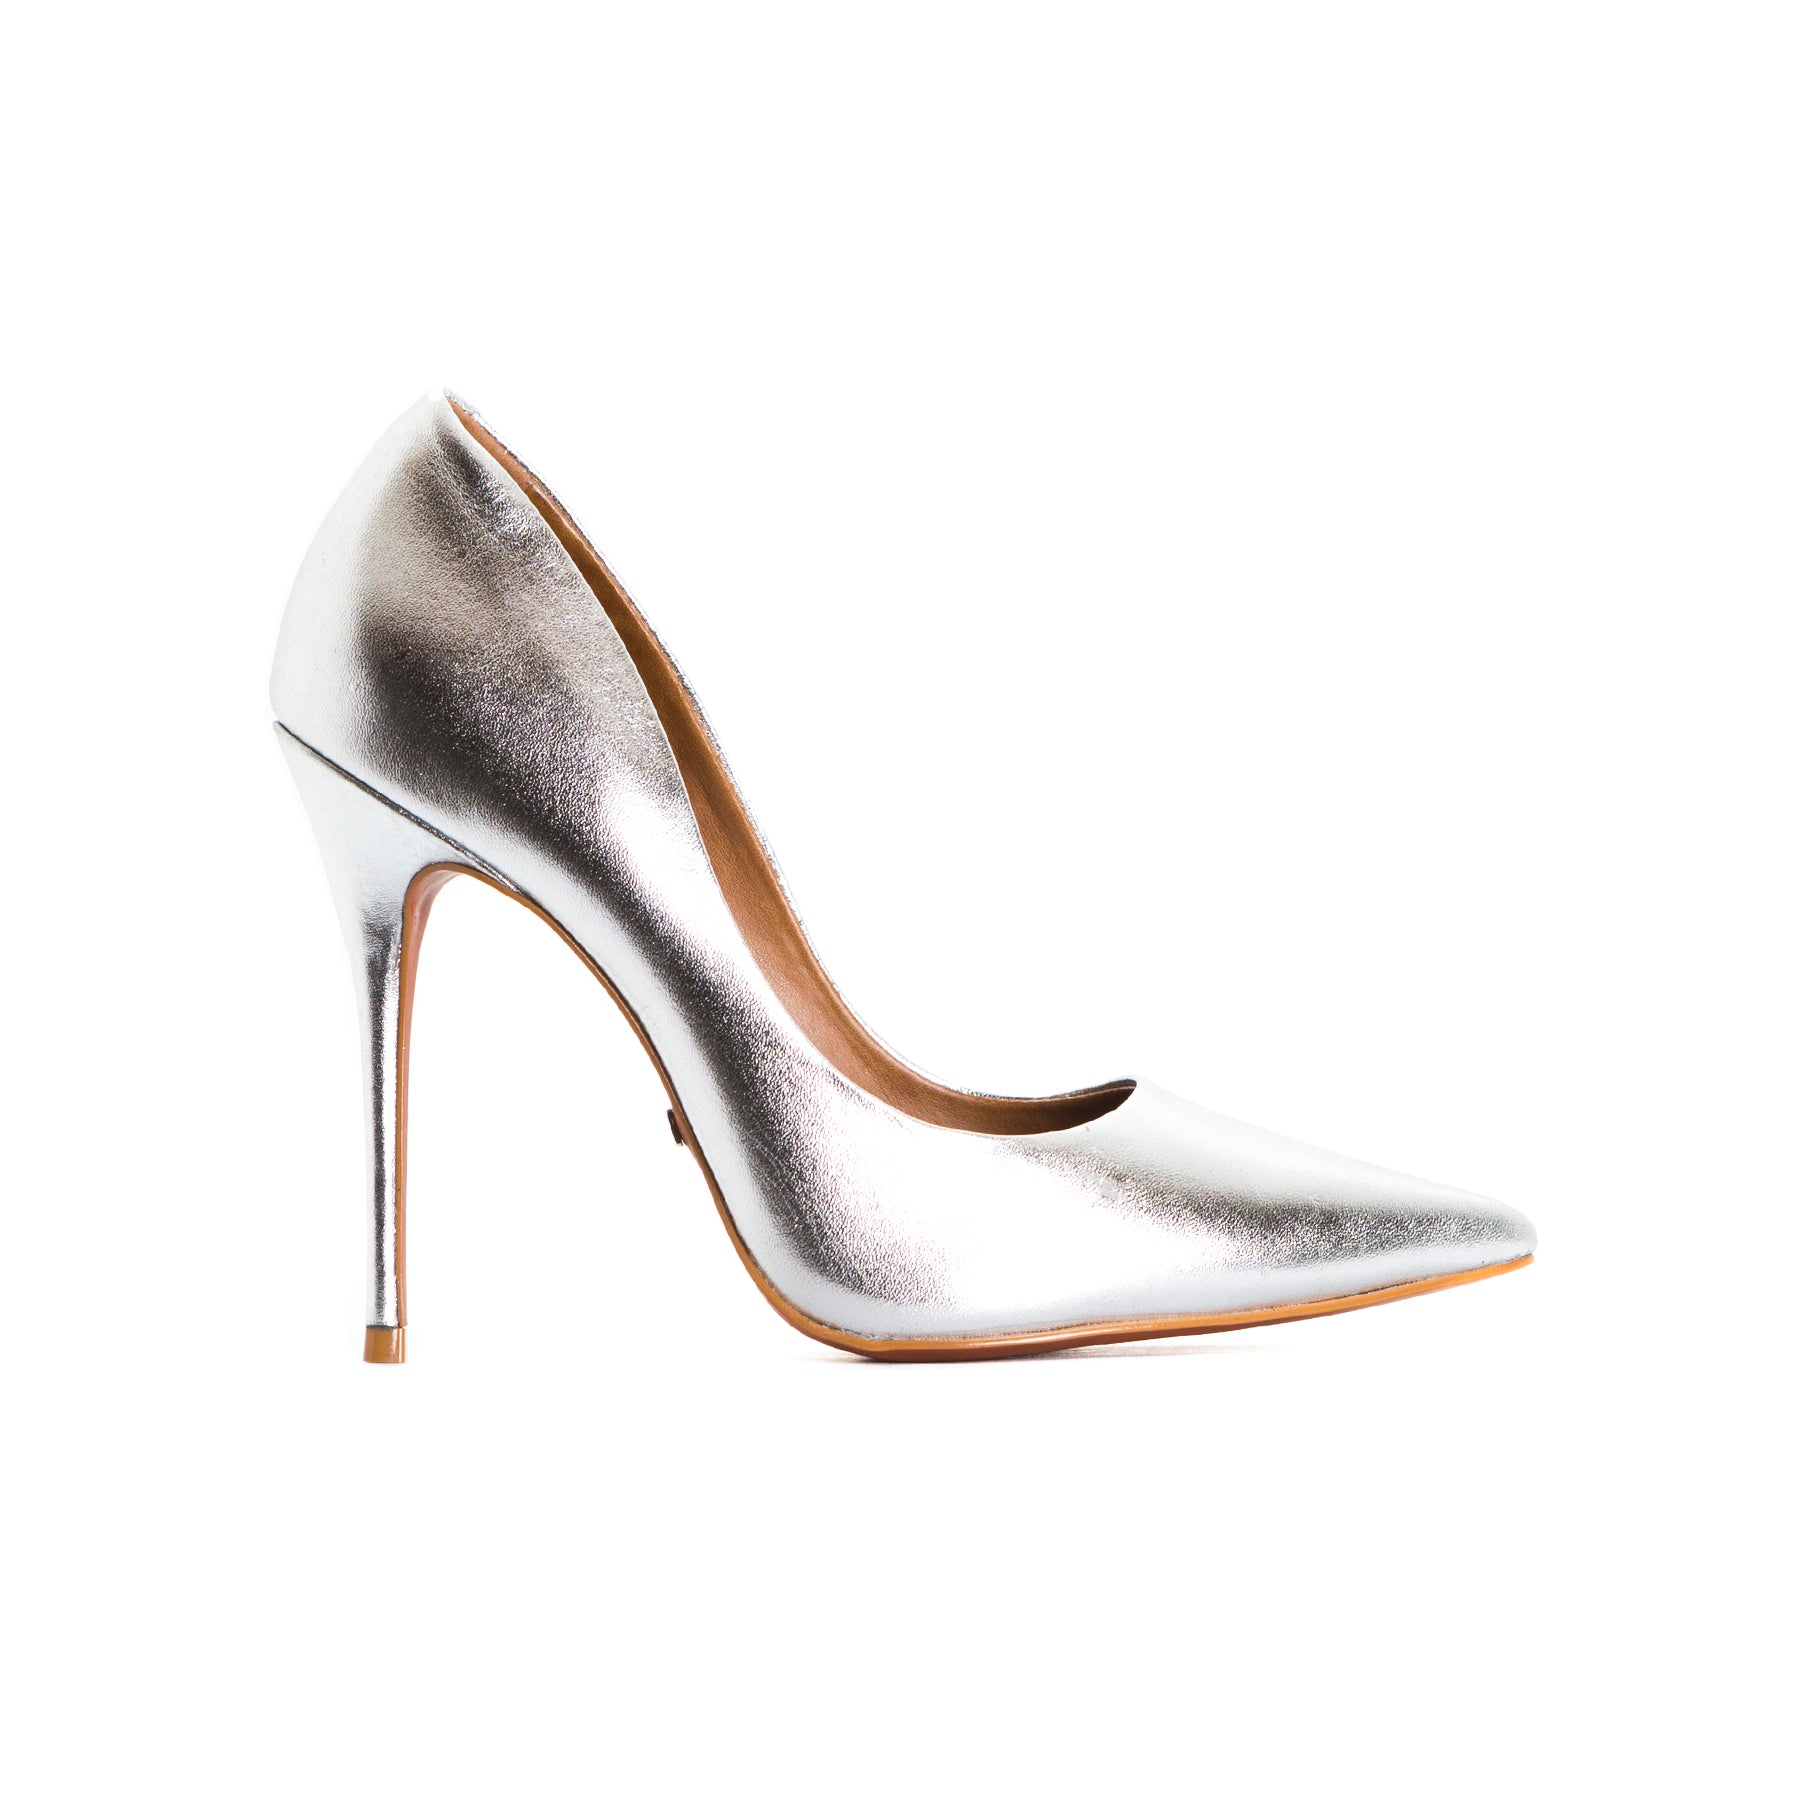 Teeva Silver Leather Pumps